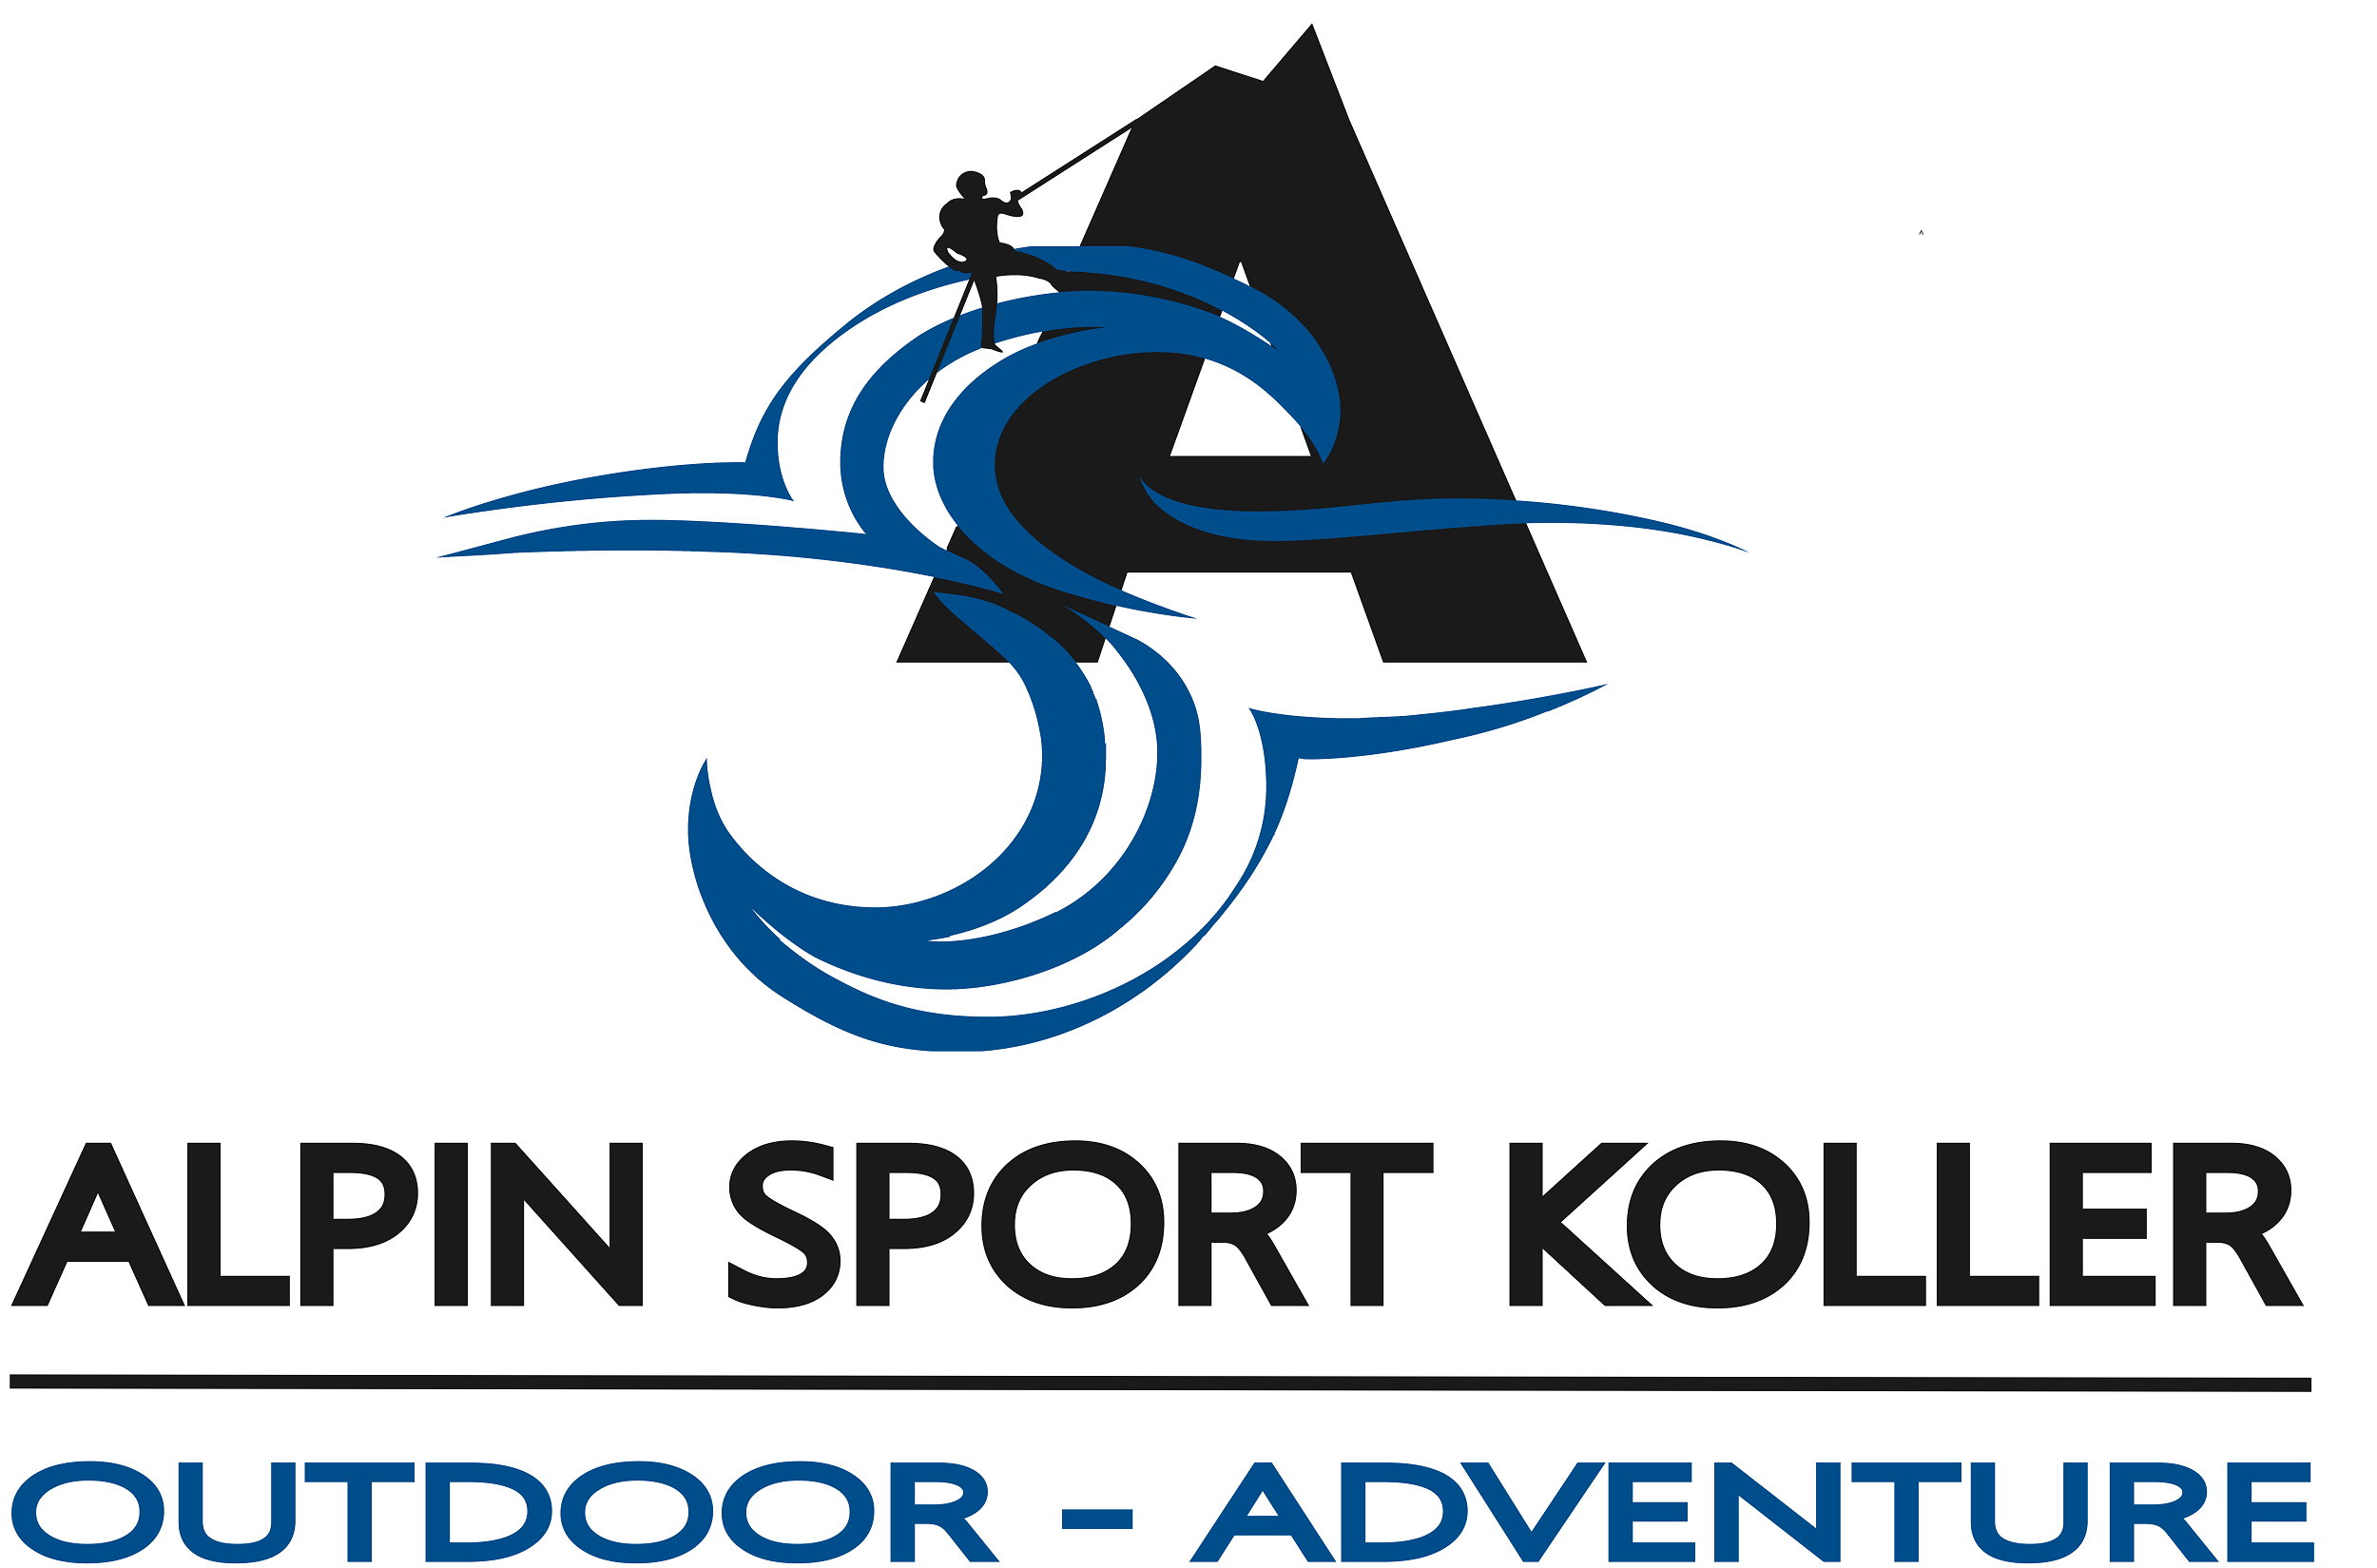 Alpinsport Koller Outdoor-Adventure